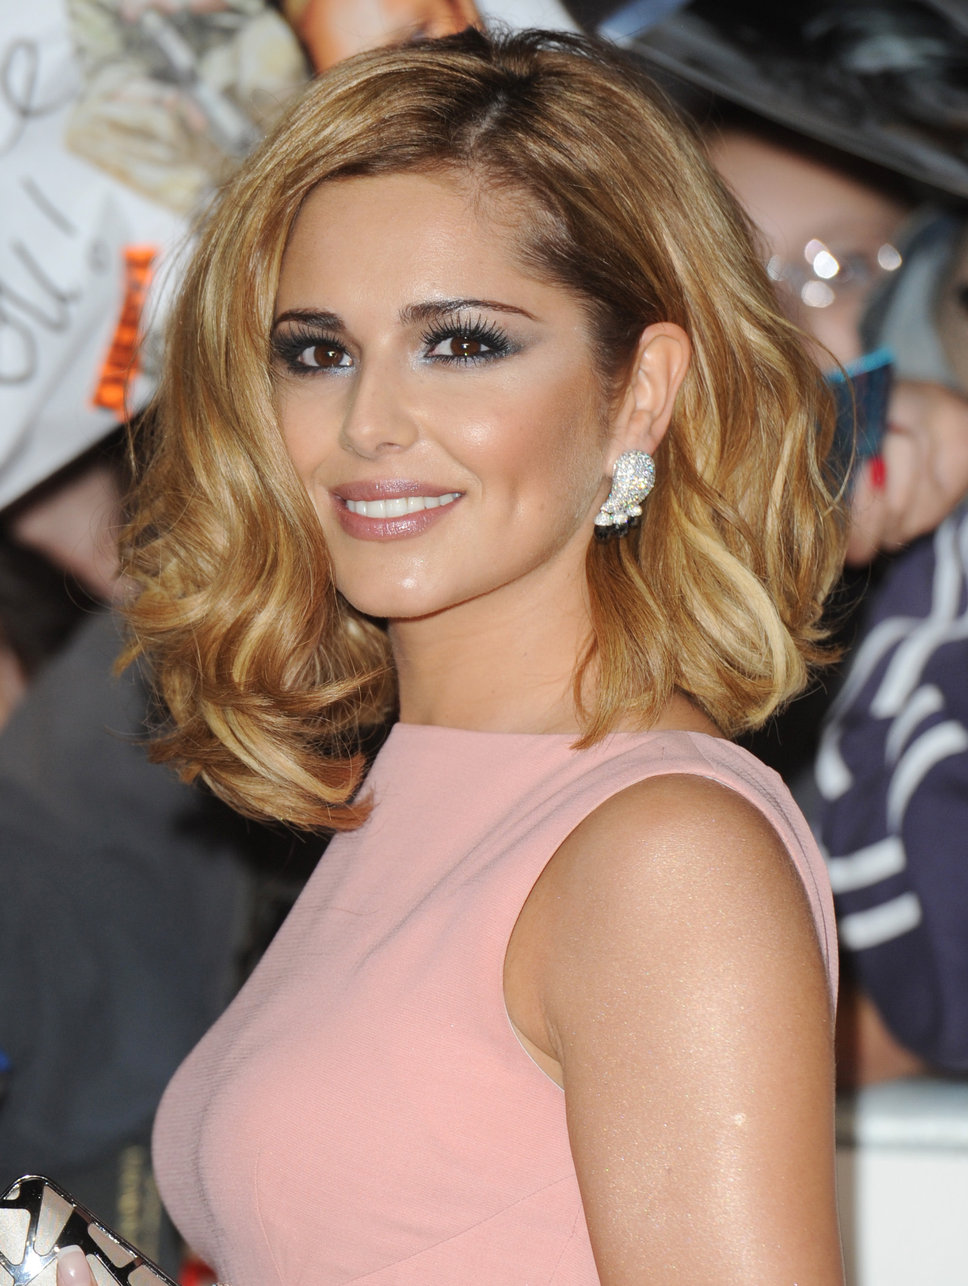 Cheryl Cole Hd Wallpapers High Definition Free